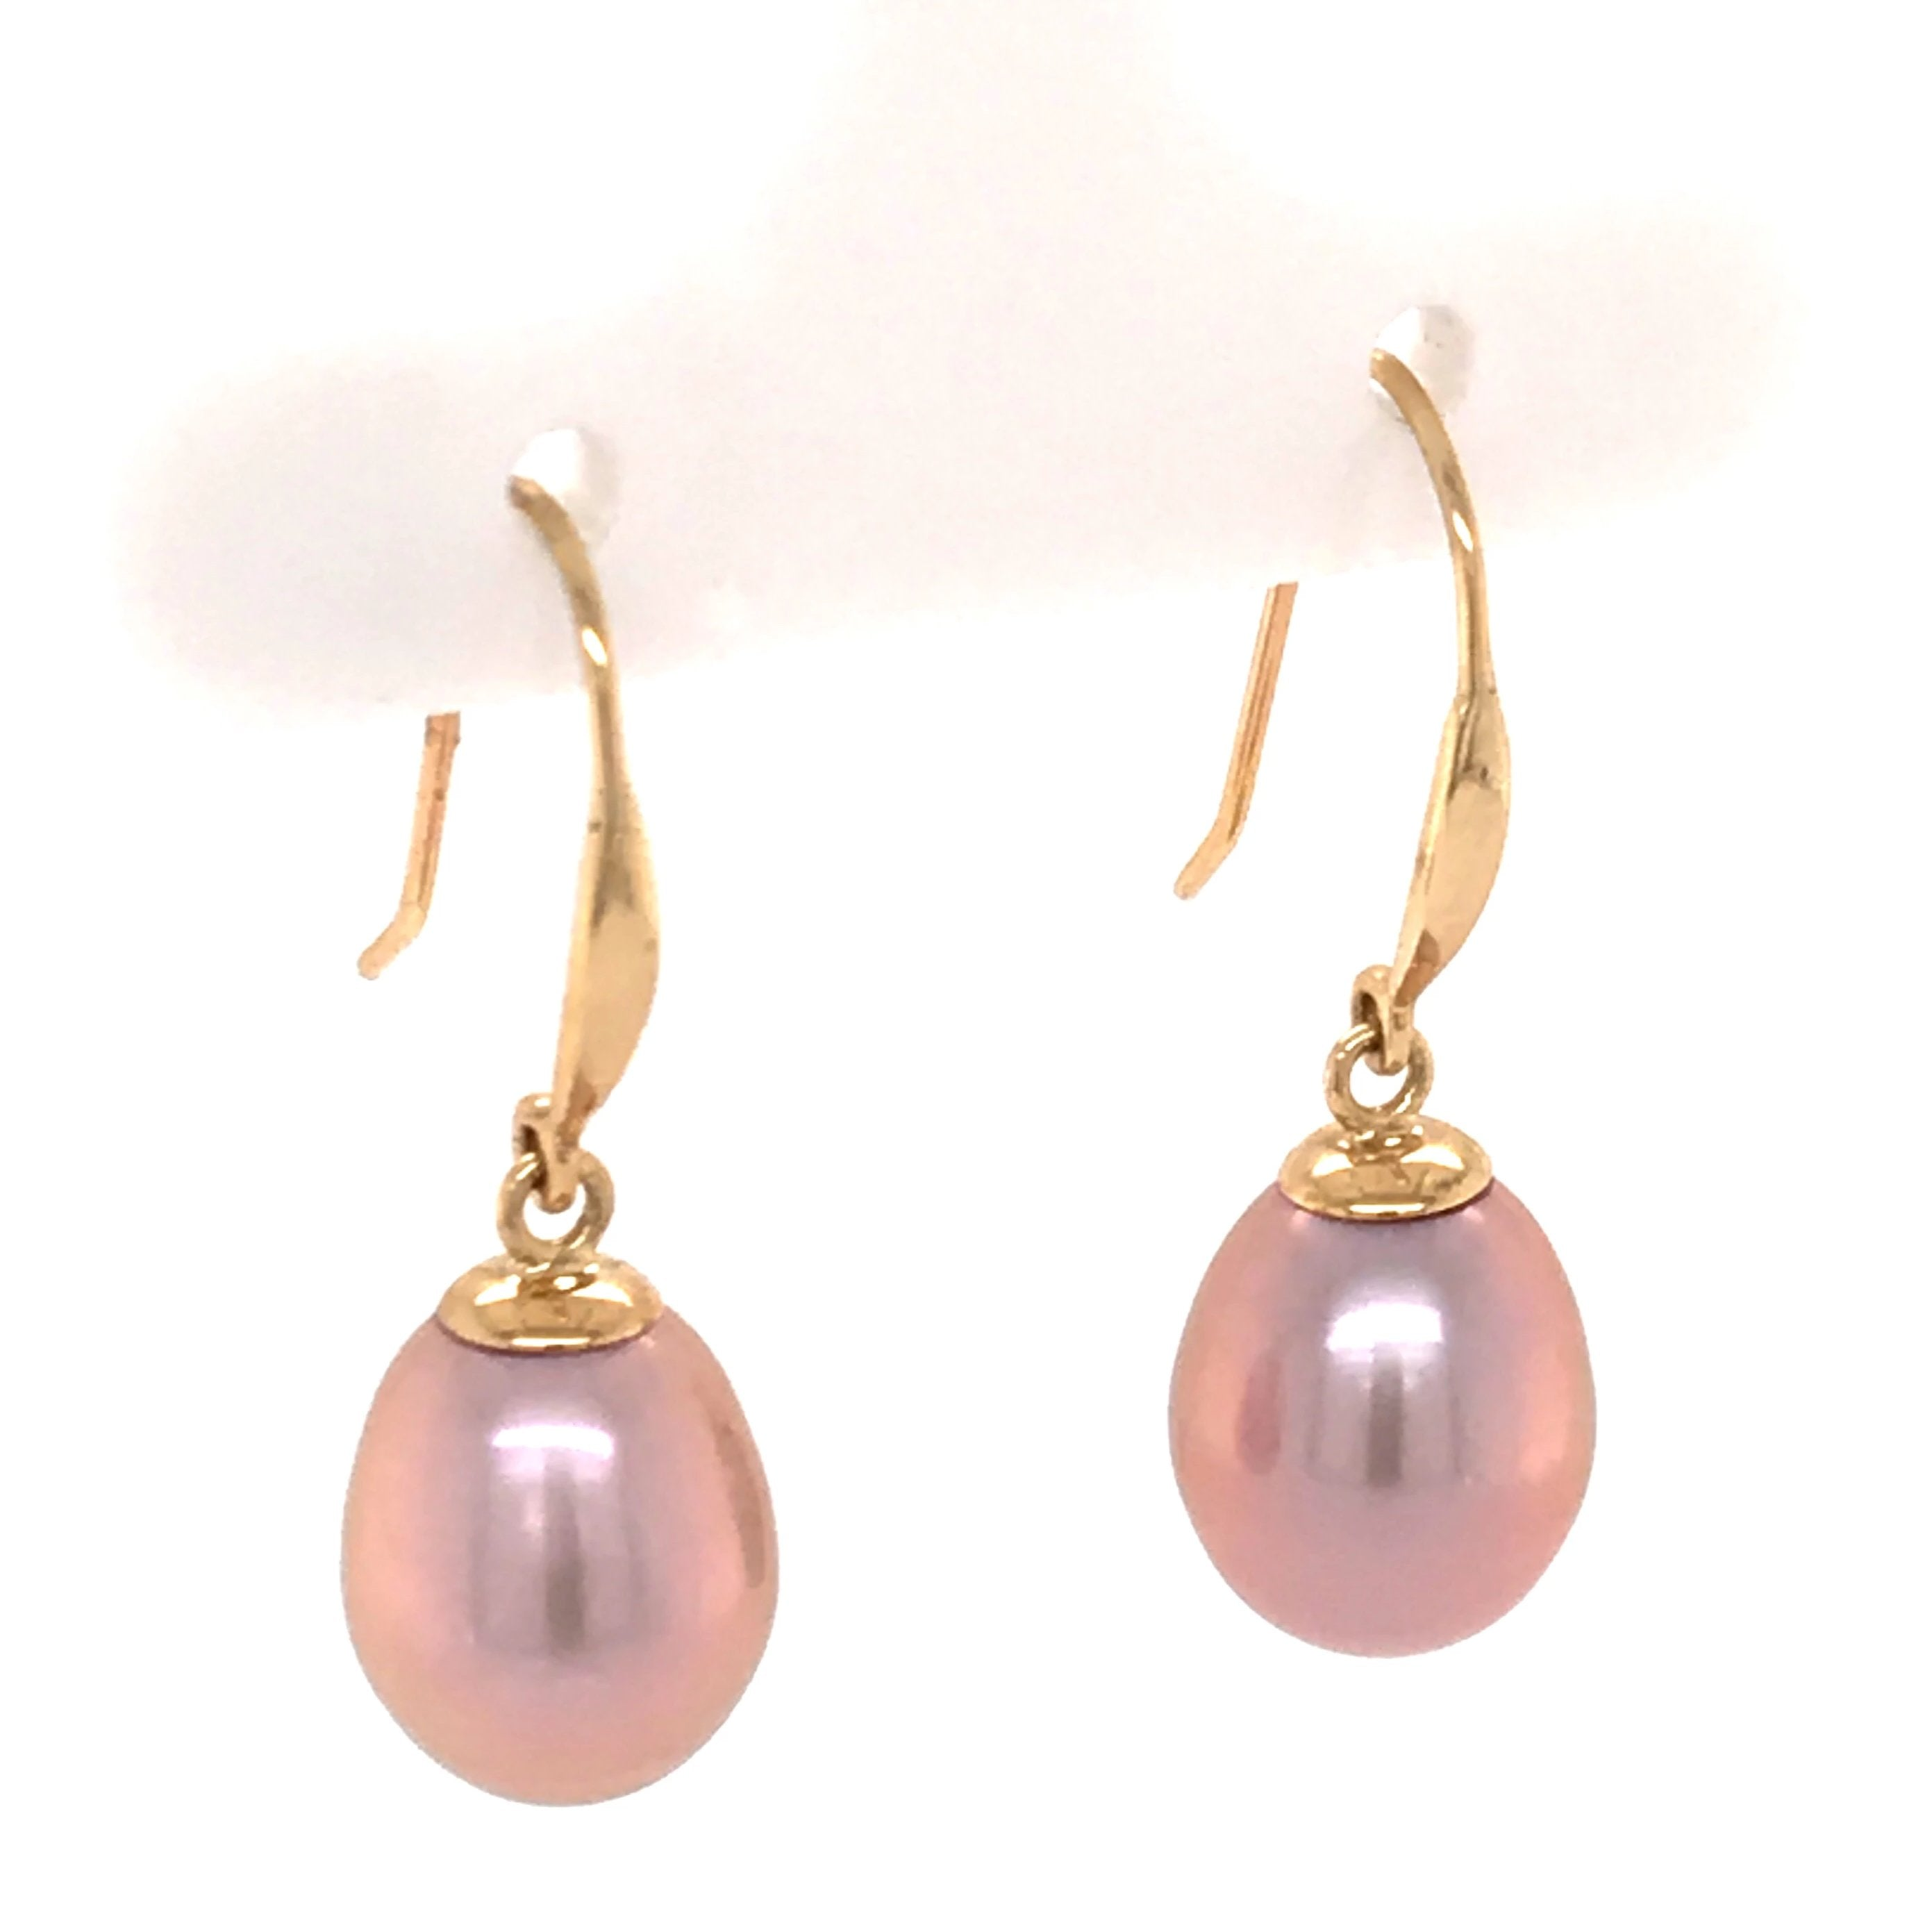 9ct Yellow Gold Pink Freshwater Drop Earrings - Andrew Scott